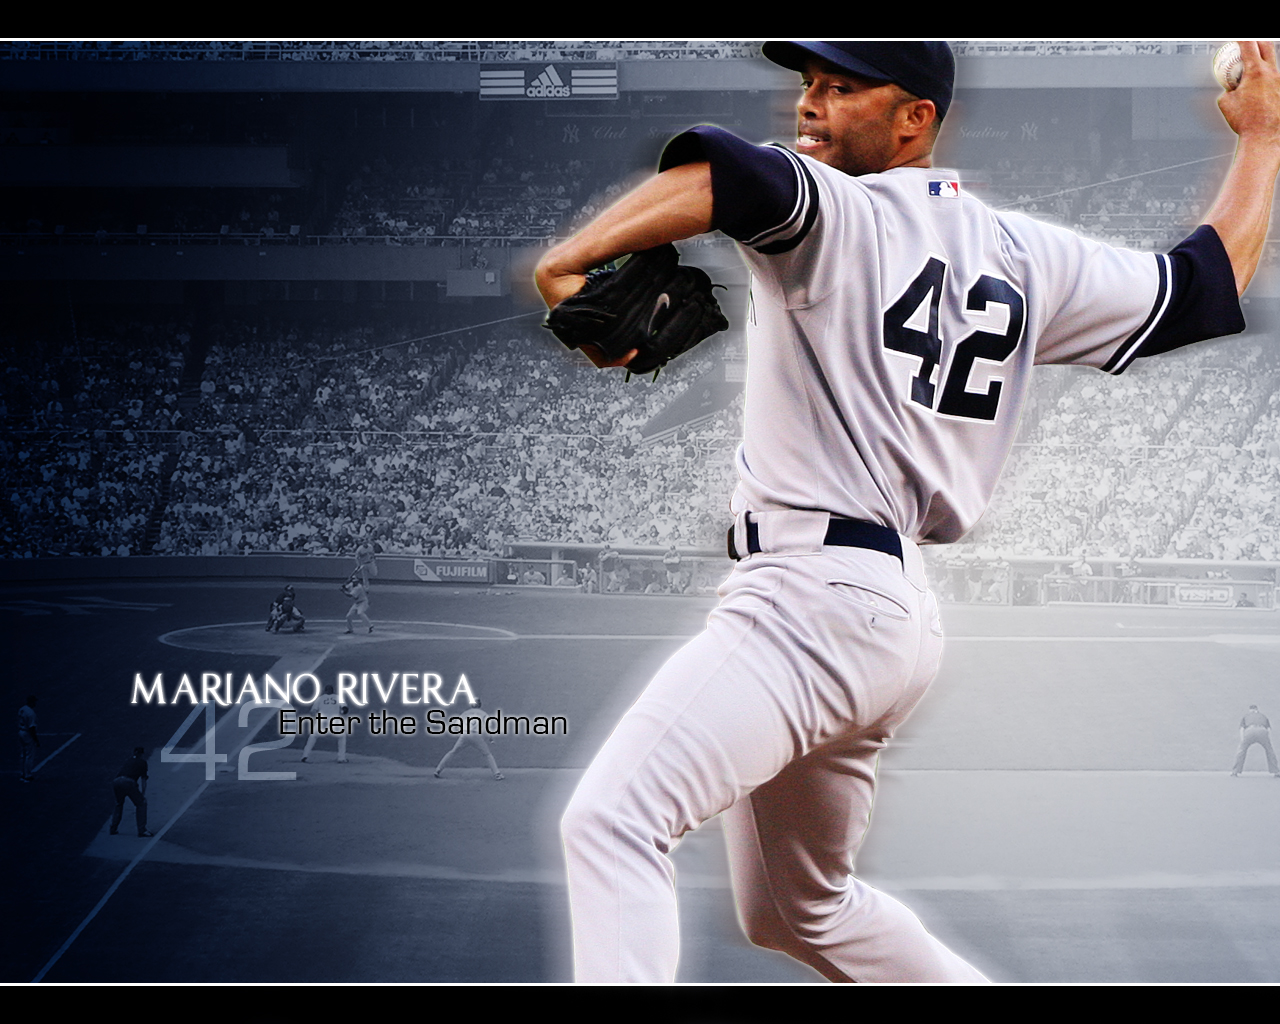 Mariano Rivera Wallpaper | Flickr - Photo Sharing!